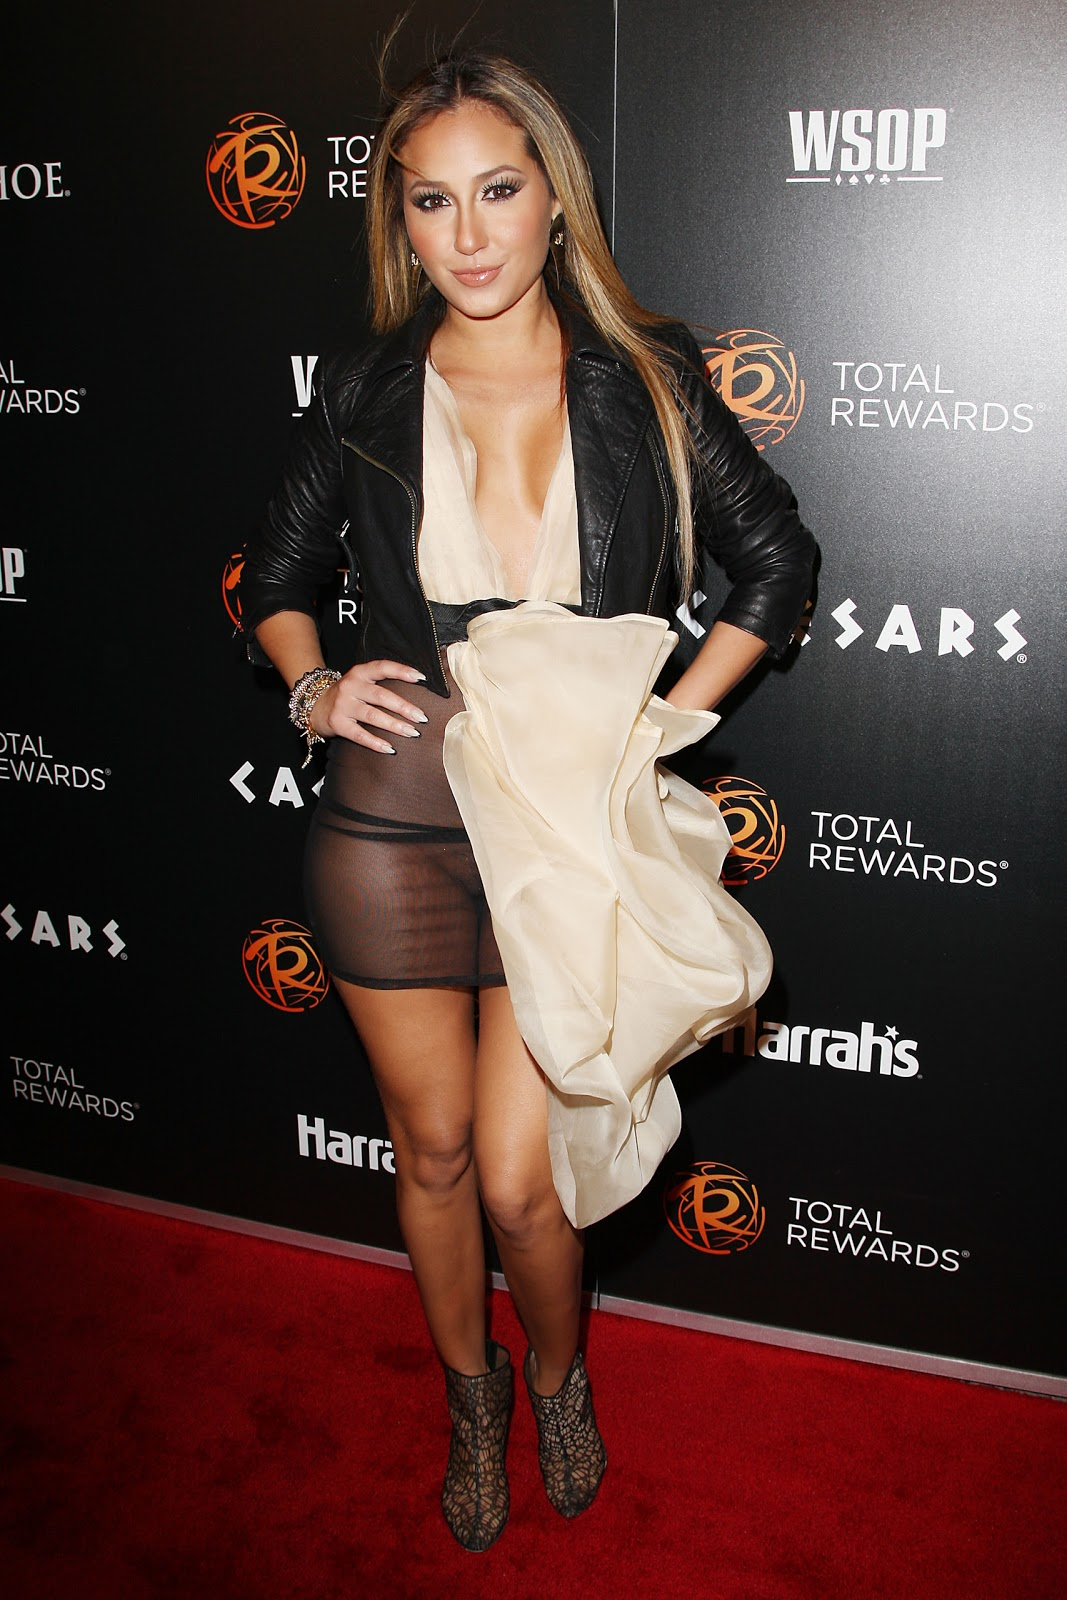 http://1.bp.blogspot.com/-l4wt59ol4DA/T1sBDxmAnOI/AAAAAAAAEOQ/oXDQZbRM9ZQ/s1600/Adrienne+Bailon+Flashing+The+See-Through+Dress+Pantyless+Pussy+www.GutterUncensored.com+002.JPG